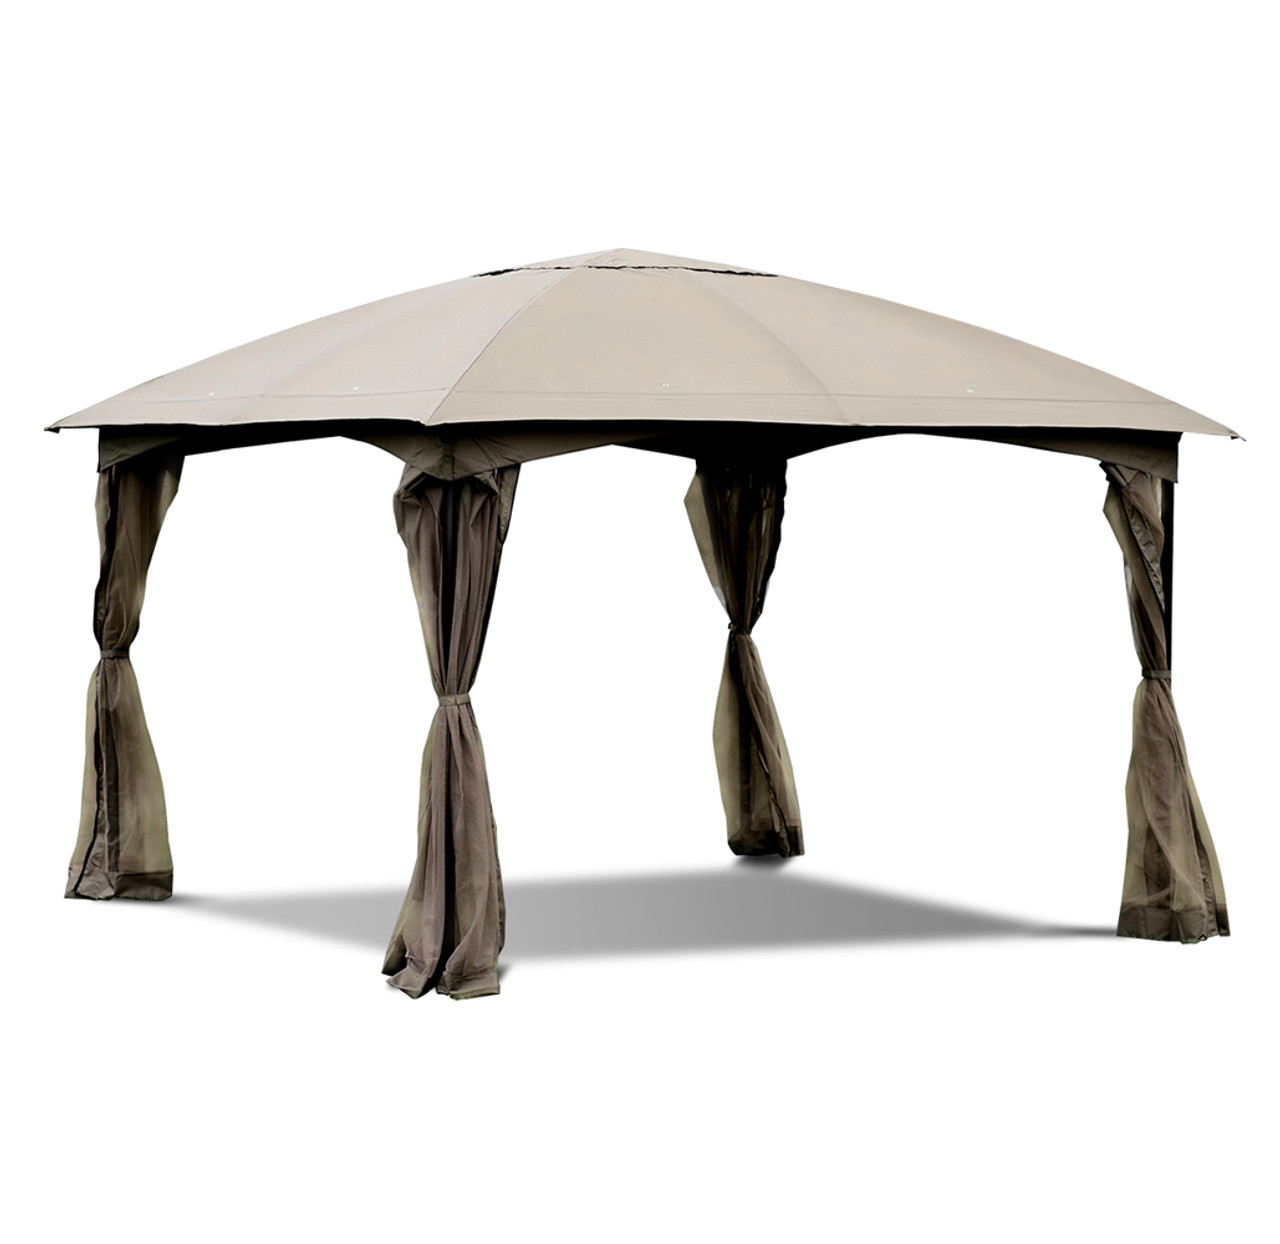 Netted 11.5-Foot Patio Gazebo! 9.99 (REG 6.95) + Free Shipping at Until Gone!